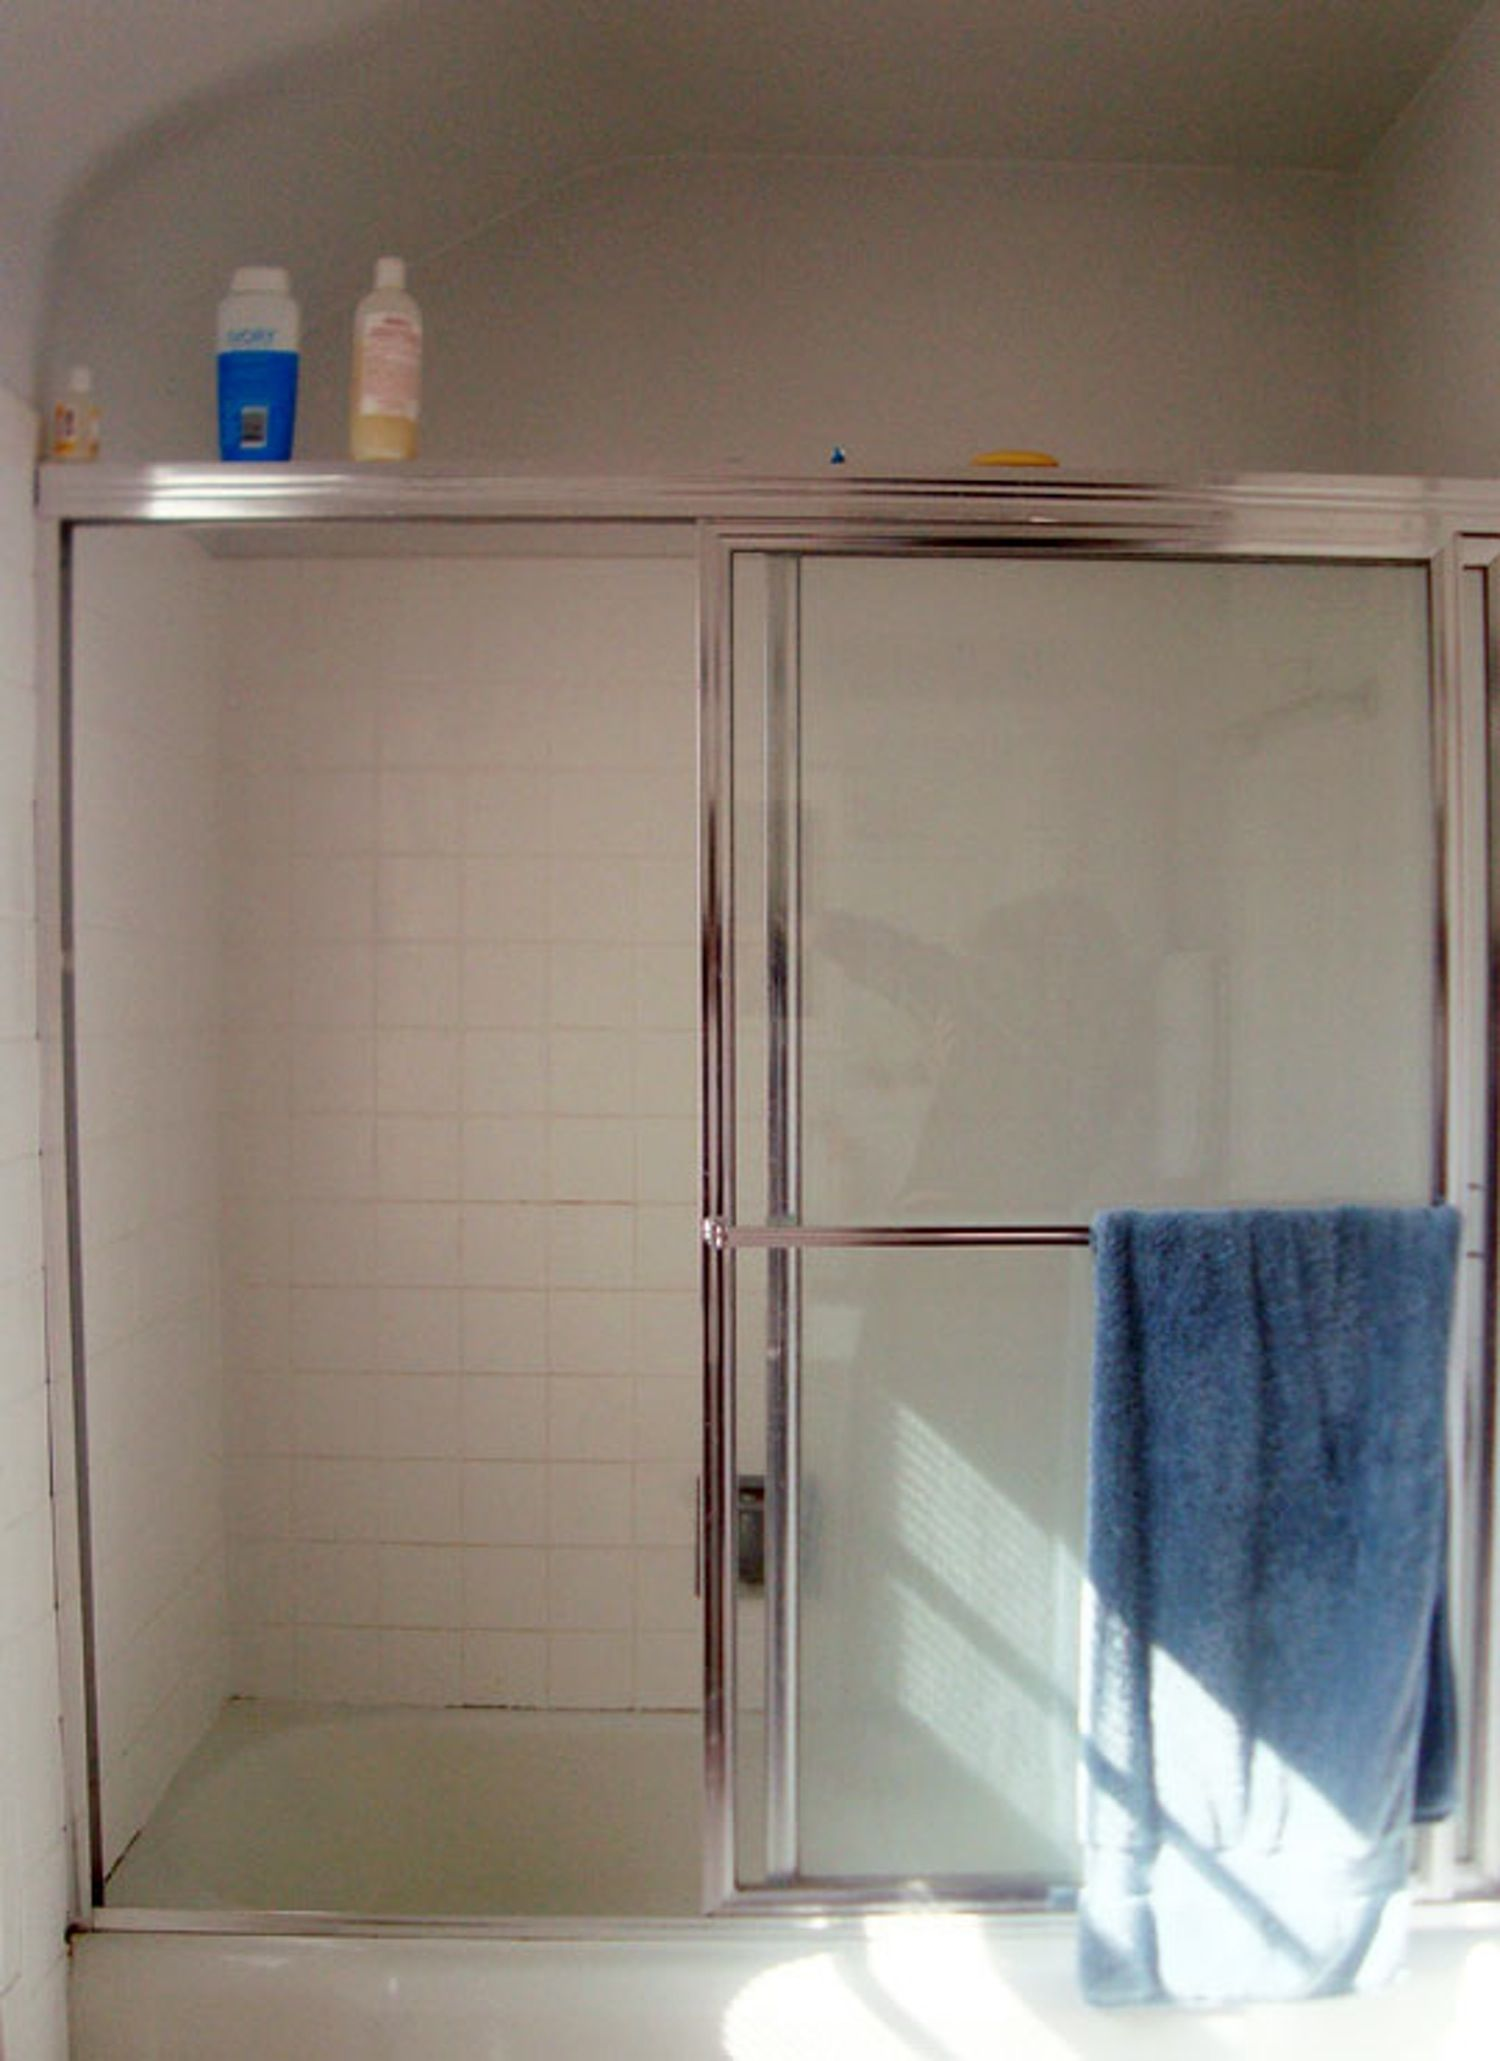 How To Replace Shower Doors With A Curtain Apartment Therapy Tutorials